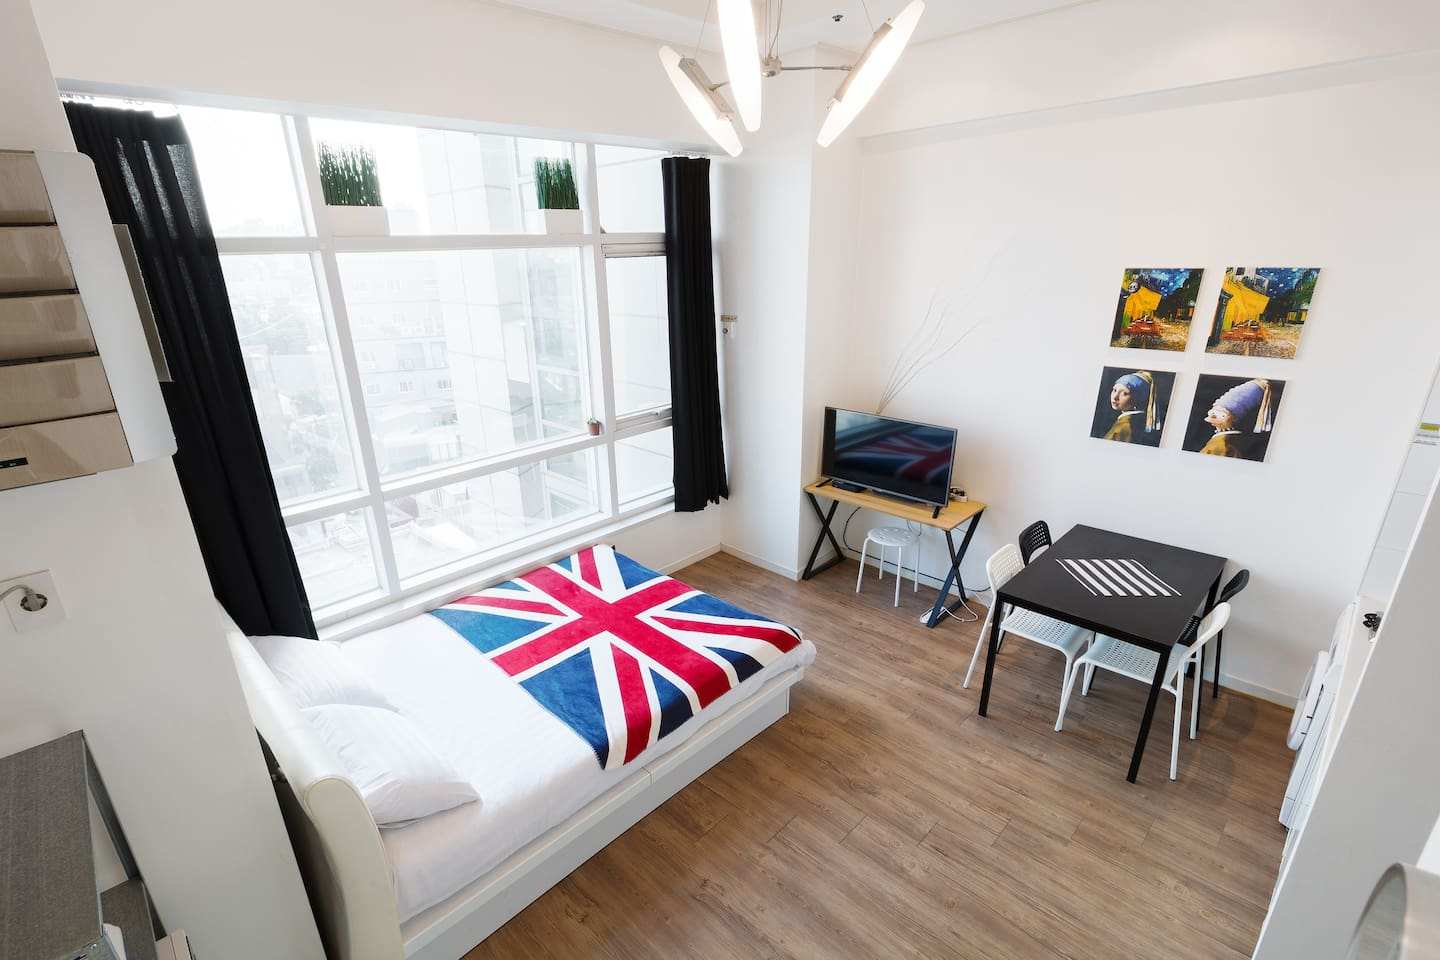 202 House Seoulstation Duplex Apt 202 House Seoul Station 3 Apartments For Rent In